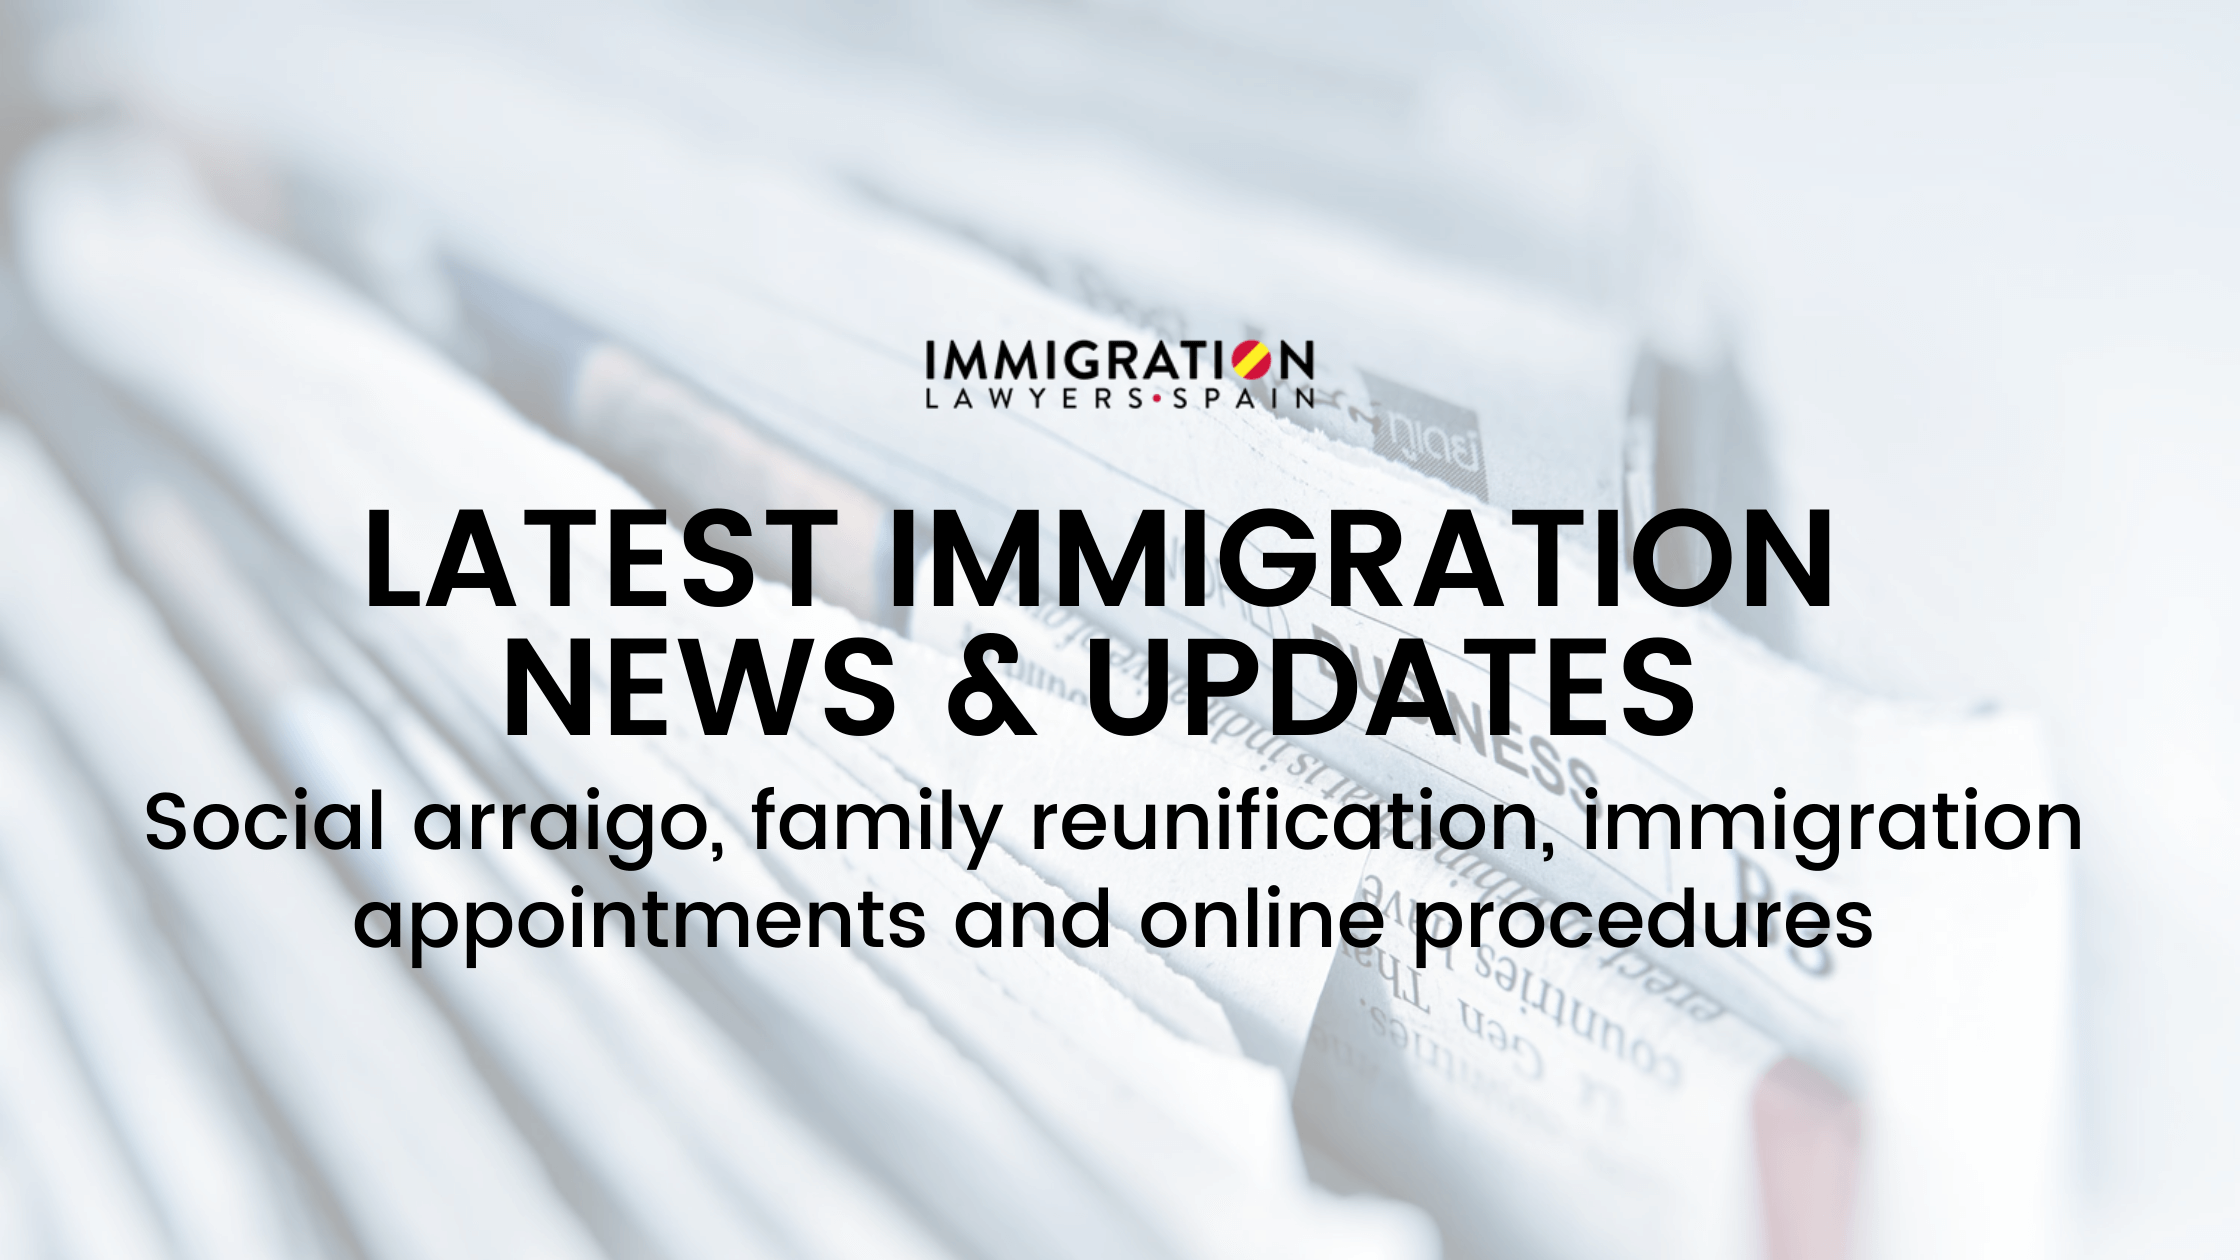 immigration news and updates in Spain